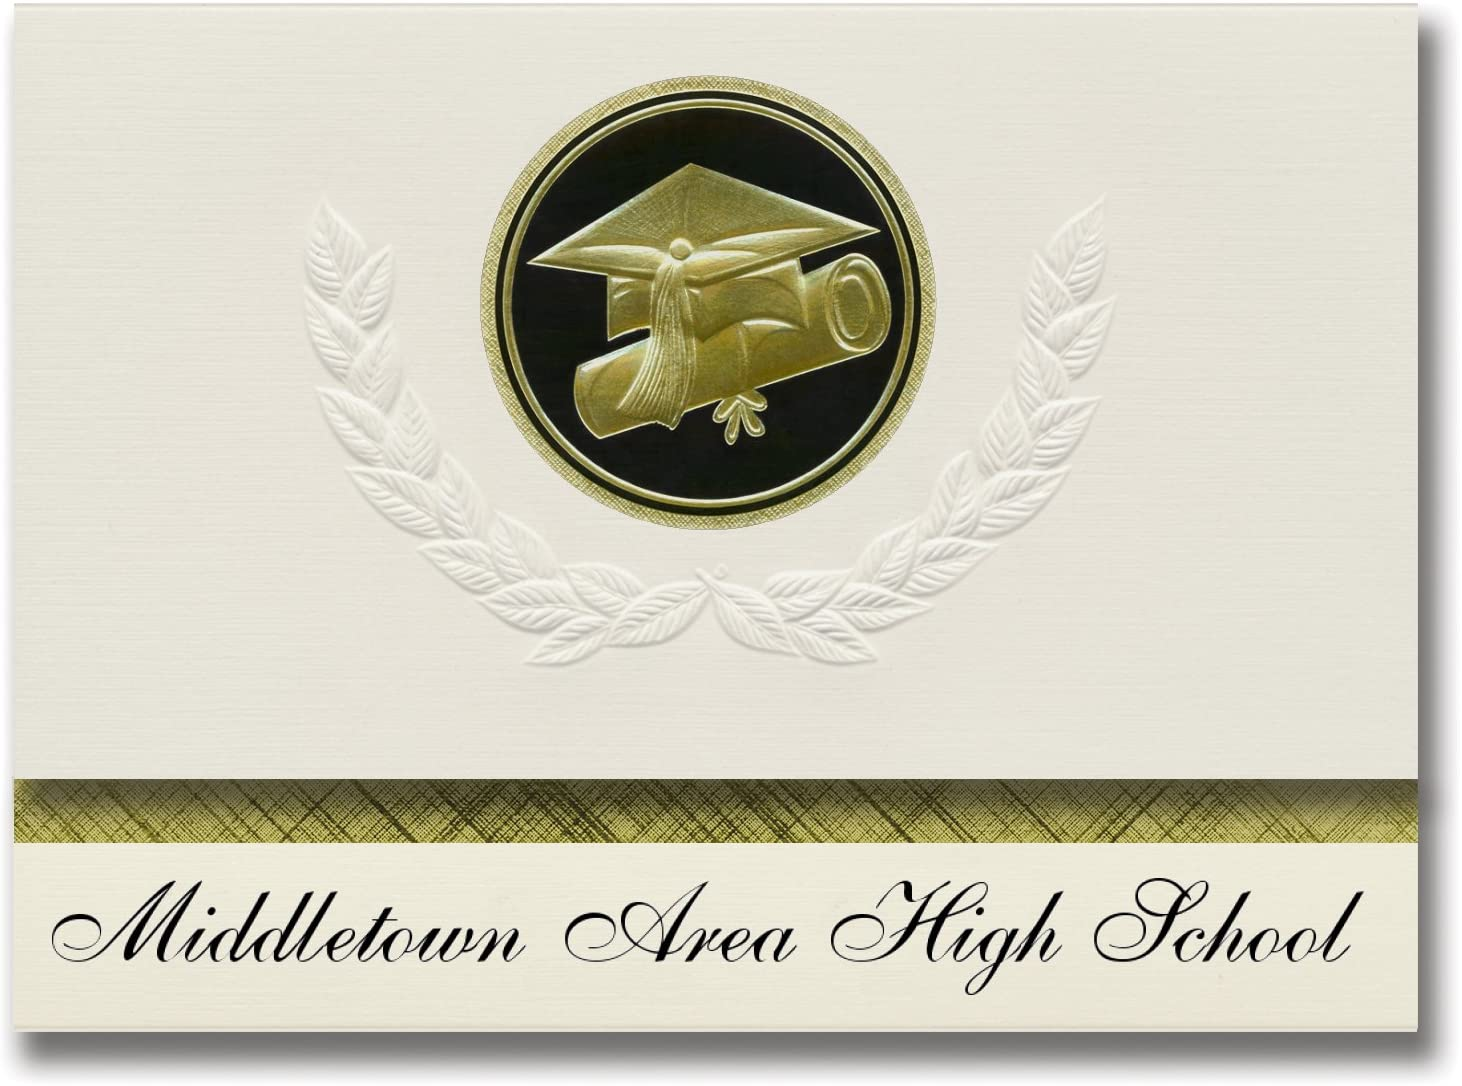 Signature Announcements Middletown Area High School (Middletown, PA) Graduation Announcements, Presidential style, Elite package of 25 Cap & Diploma Seal Black & Gold